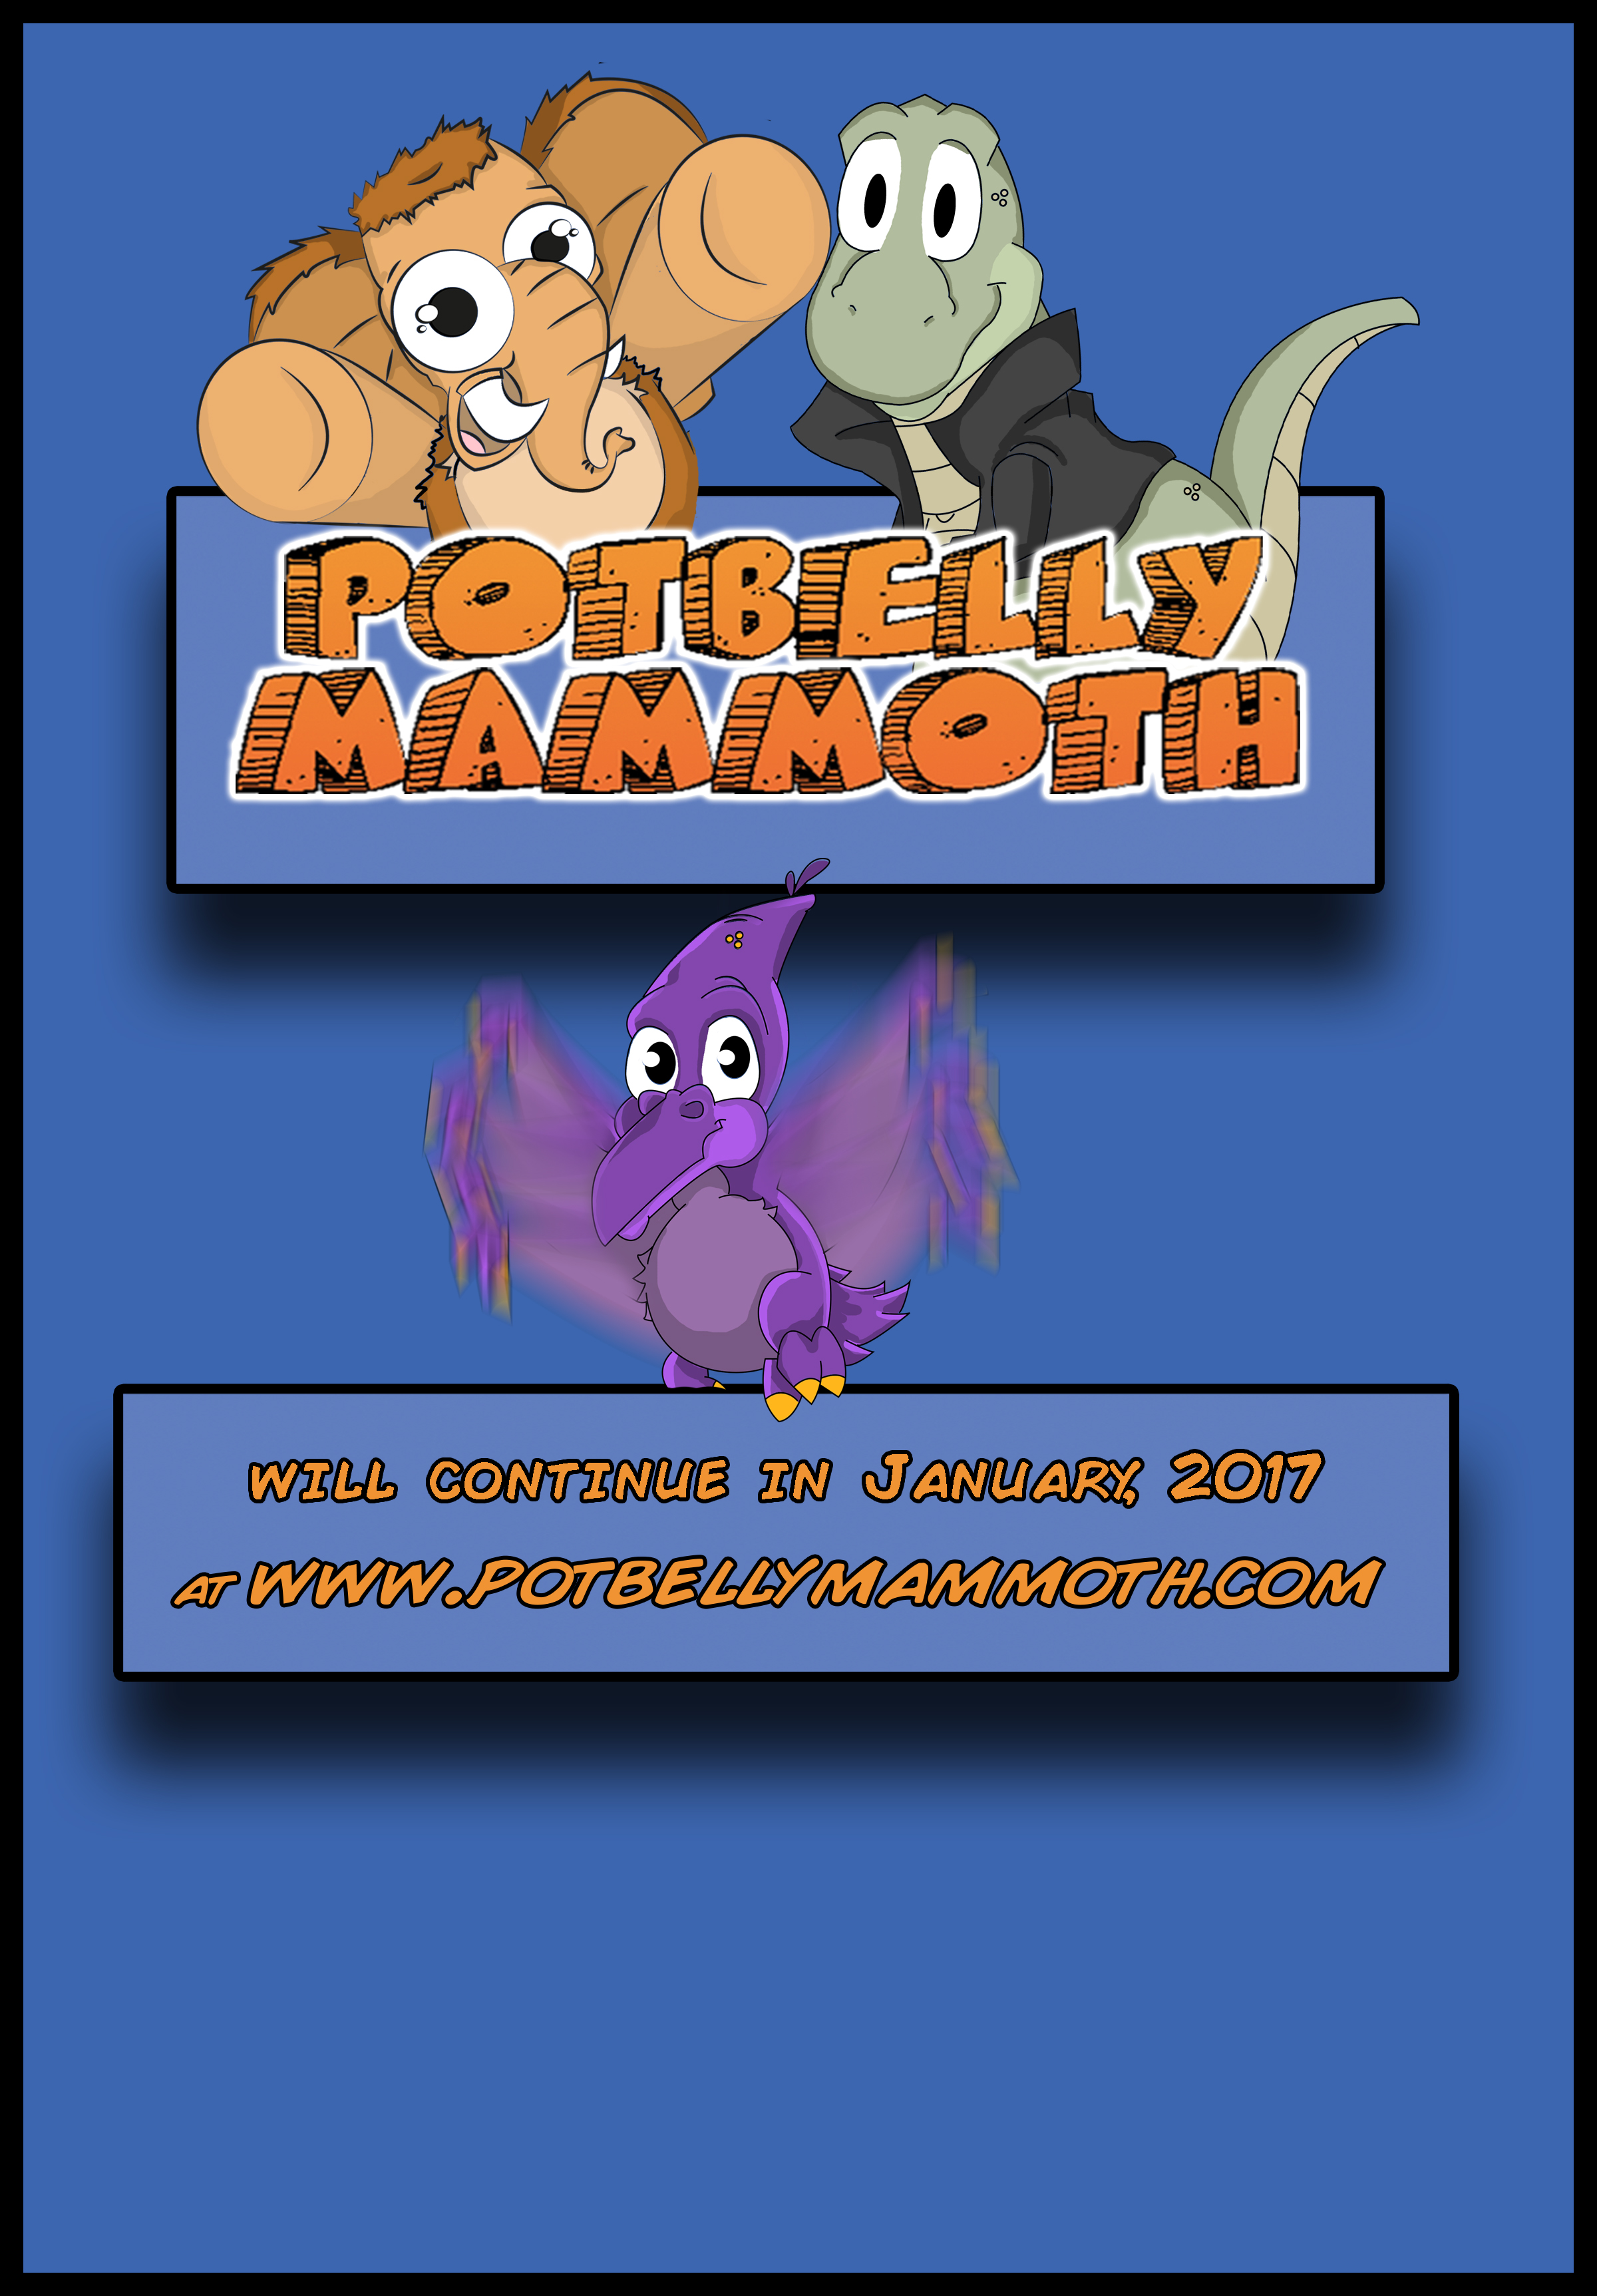 Potbelly Mammoth Will Return!